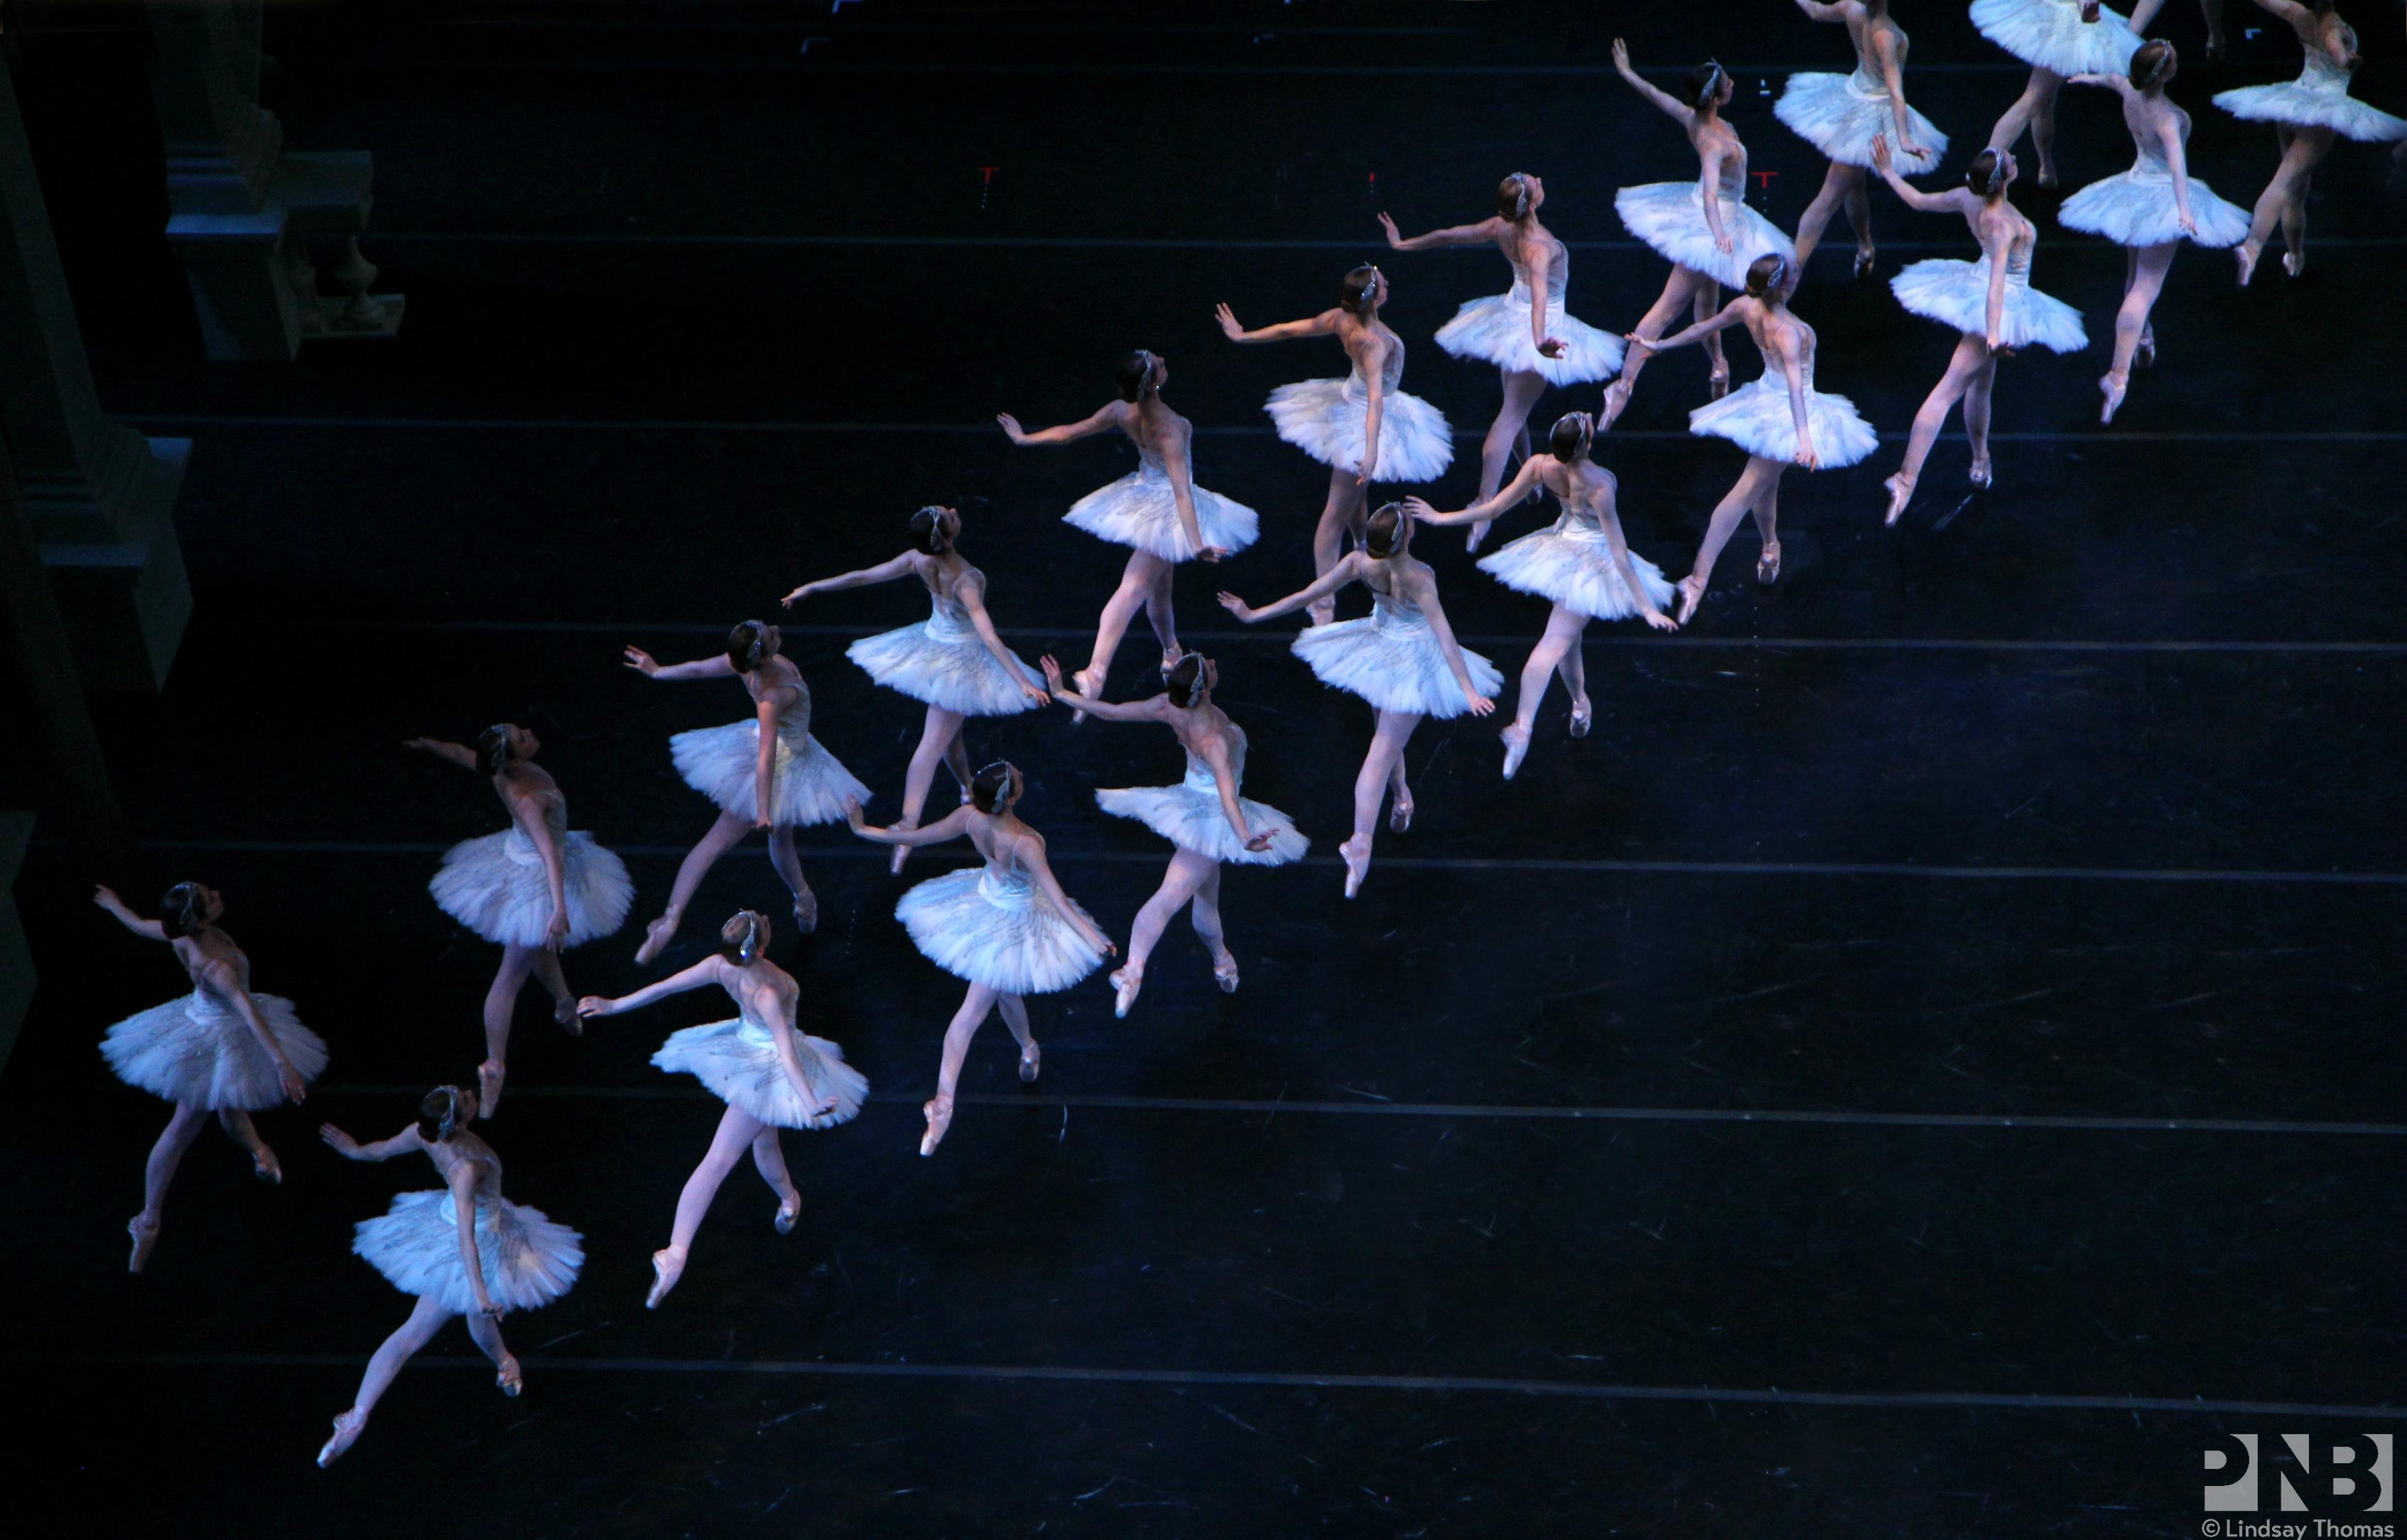 Widely considered to be the greatest classical ballet of all time, Swan Lake is a magnificent production of indescribable beauty. PNB will bring a corps of 24 swans and their queen to life this February. Come for Tchaikovsky's cherished score performed by the mighty PNB Orchestra; stay to watch your favorite ballerina tackle the fiendishly difficult dual role of Odette/Odile. (Image: PNB)